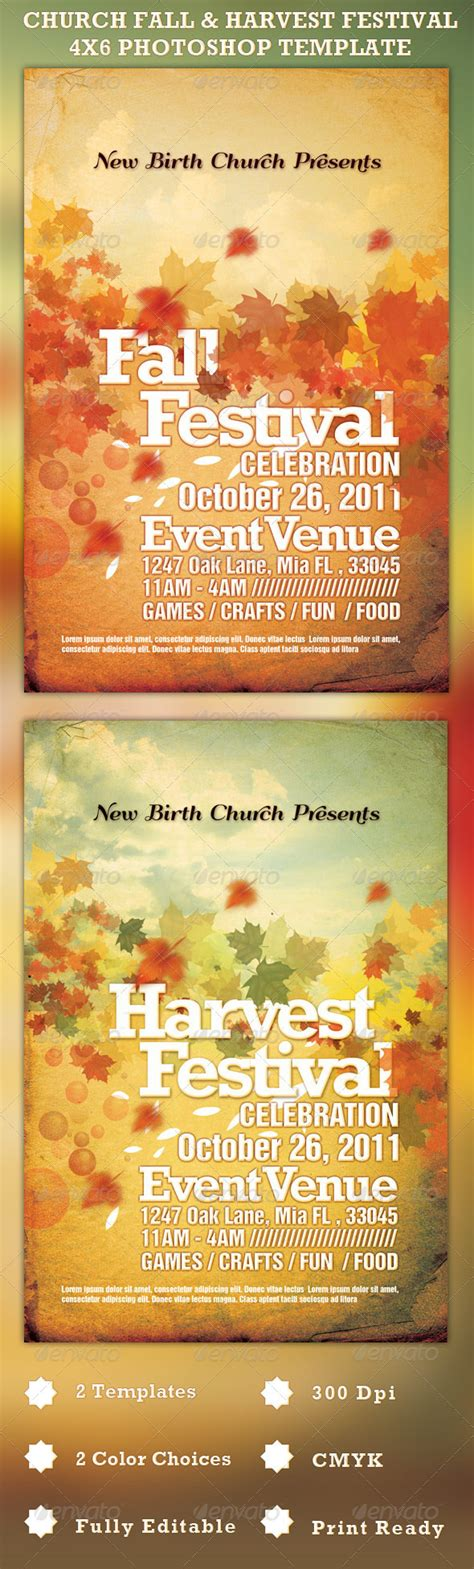 Church Fall And Harvest Festival Template On Behance Harvest Festival Flyer Free Template